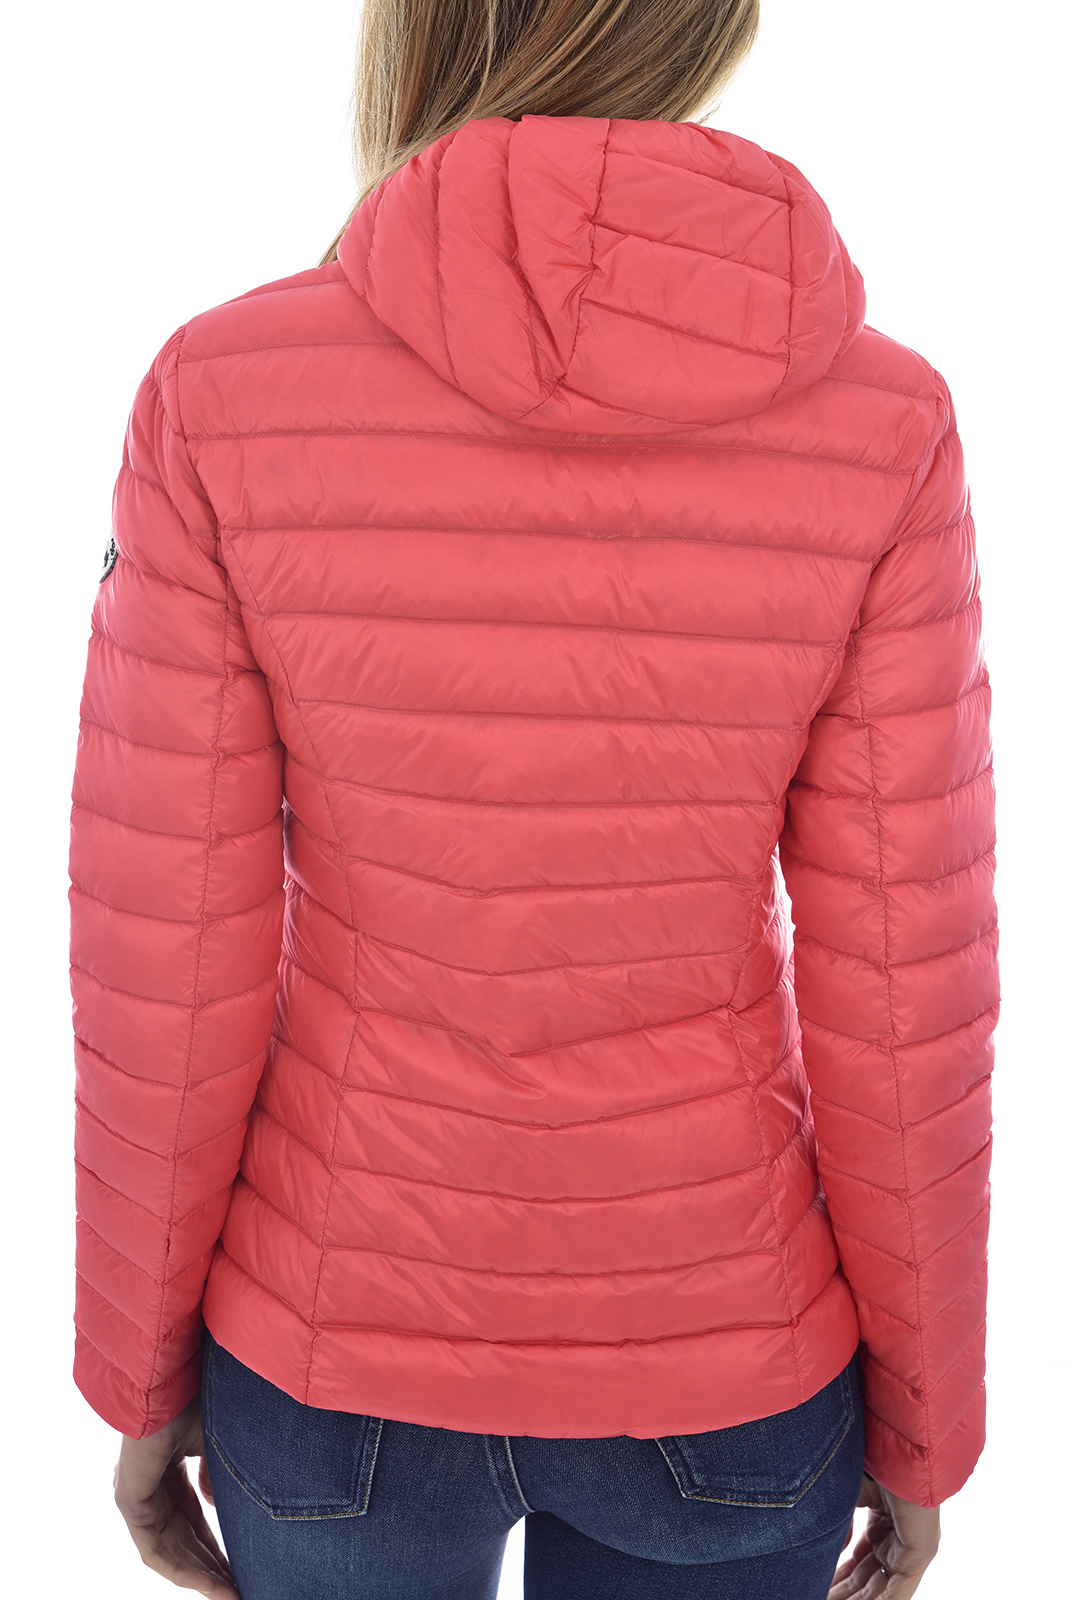 Blouson  Just over the top CLOE 707 CORAIL